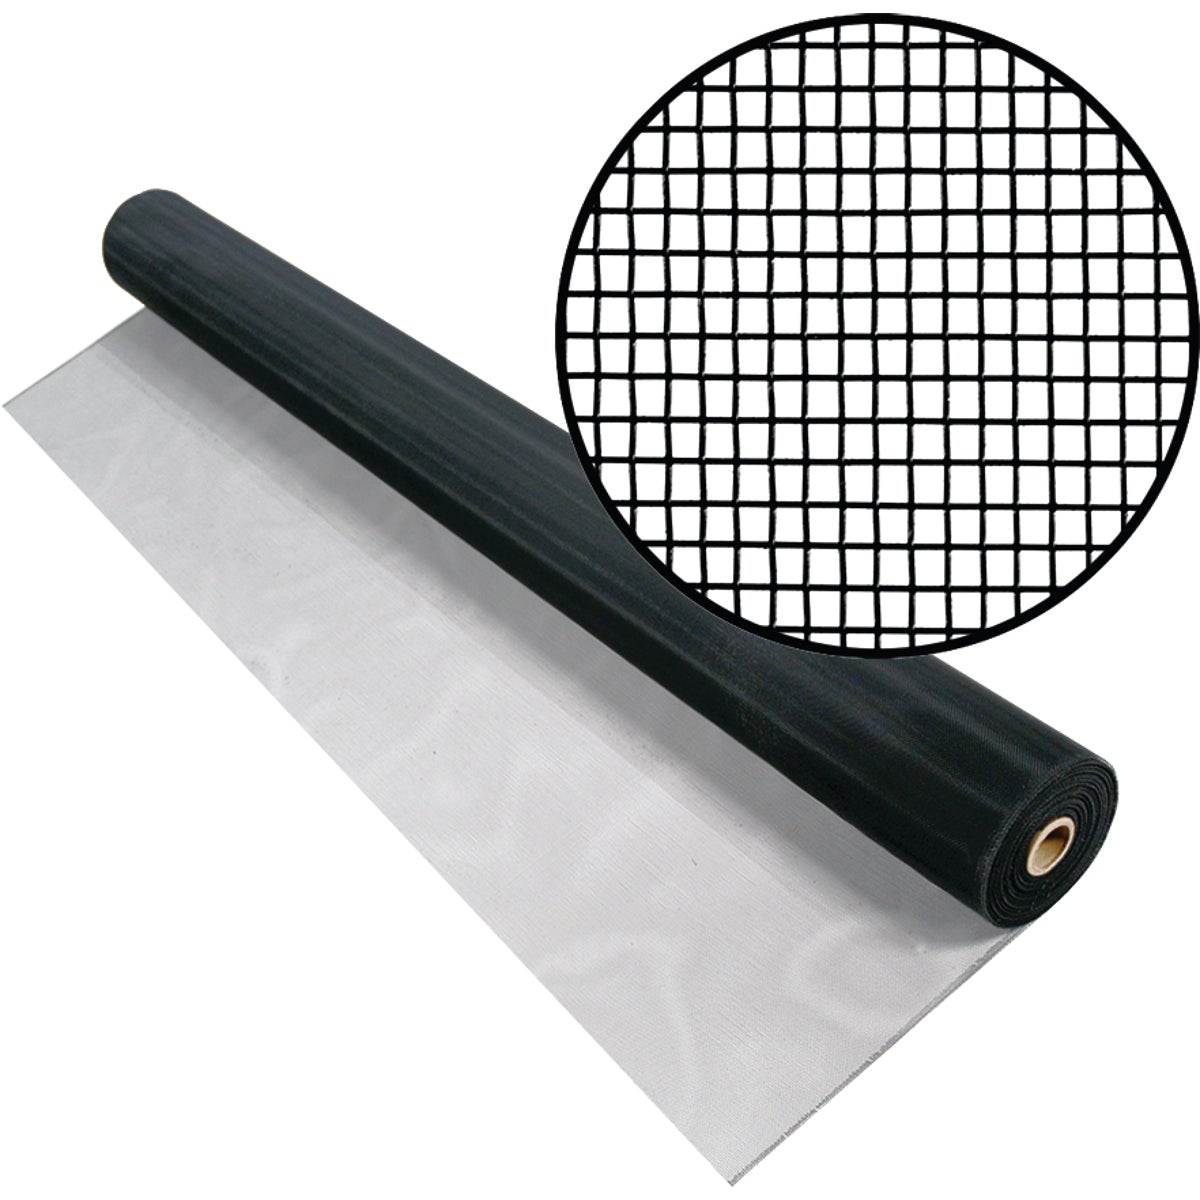 30X100 BLACK ALUM SCREEN - FCS9166M by New York Wire